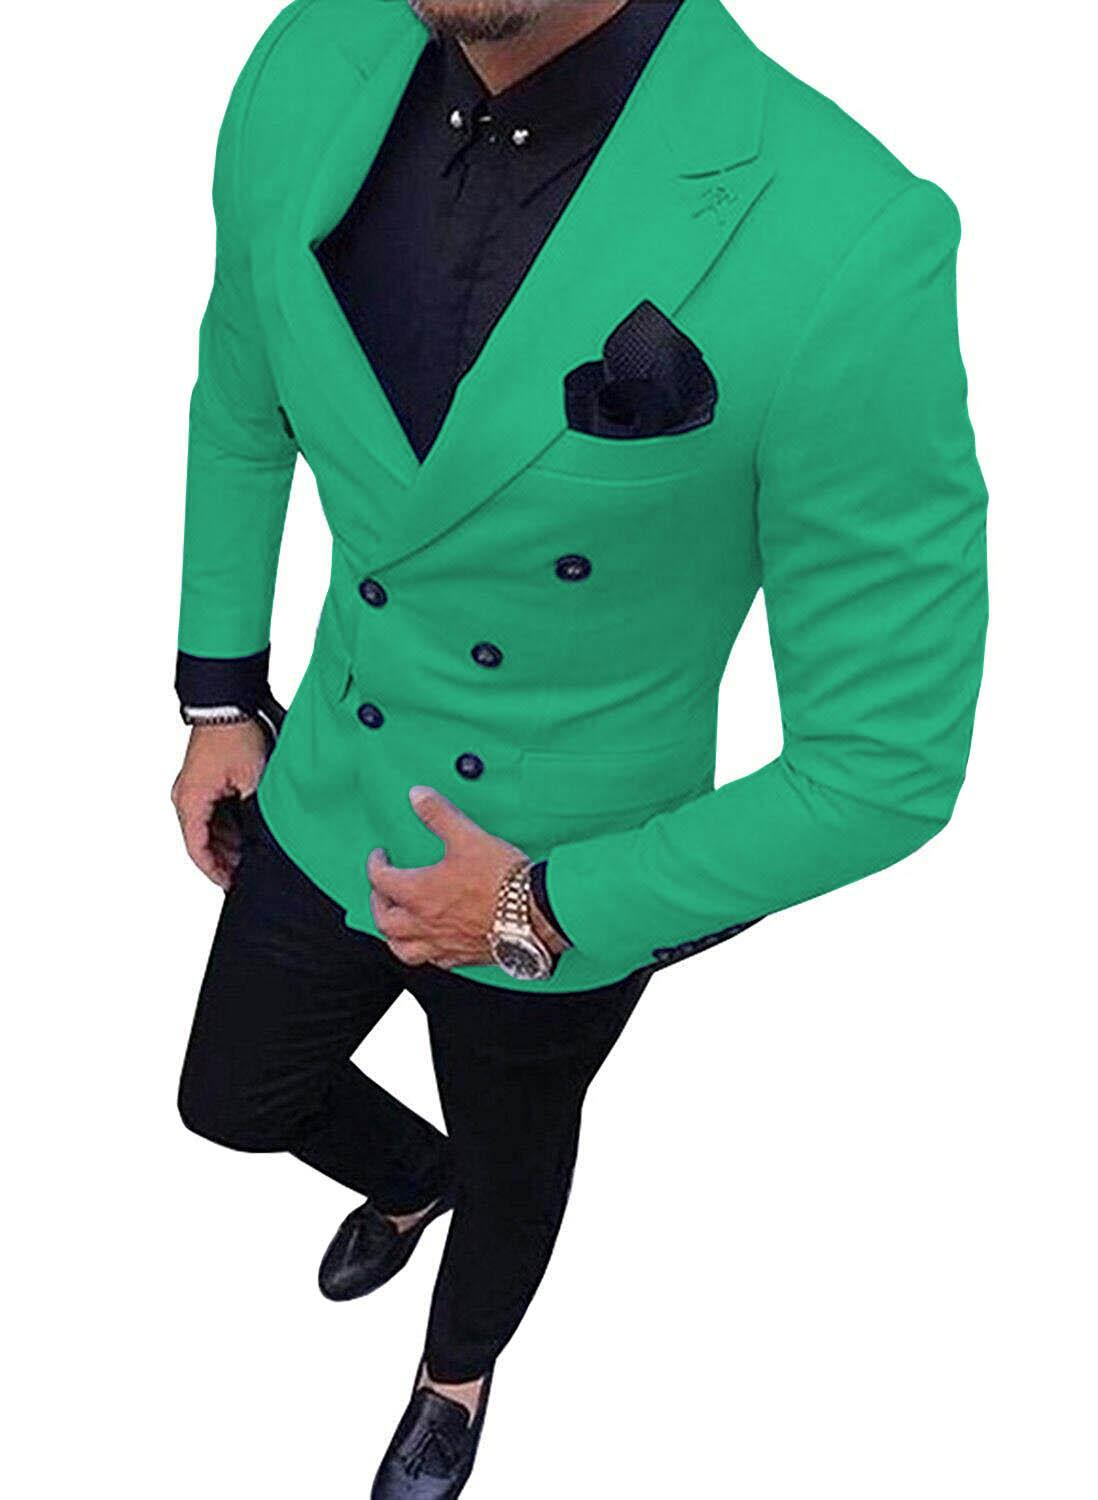 2019 New Green Men's Suit Double-Breasted 2-Piece Suit Notch Lapel Blazer Jacket Tux & Trousers For Weeding , Party